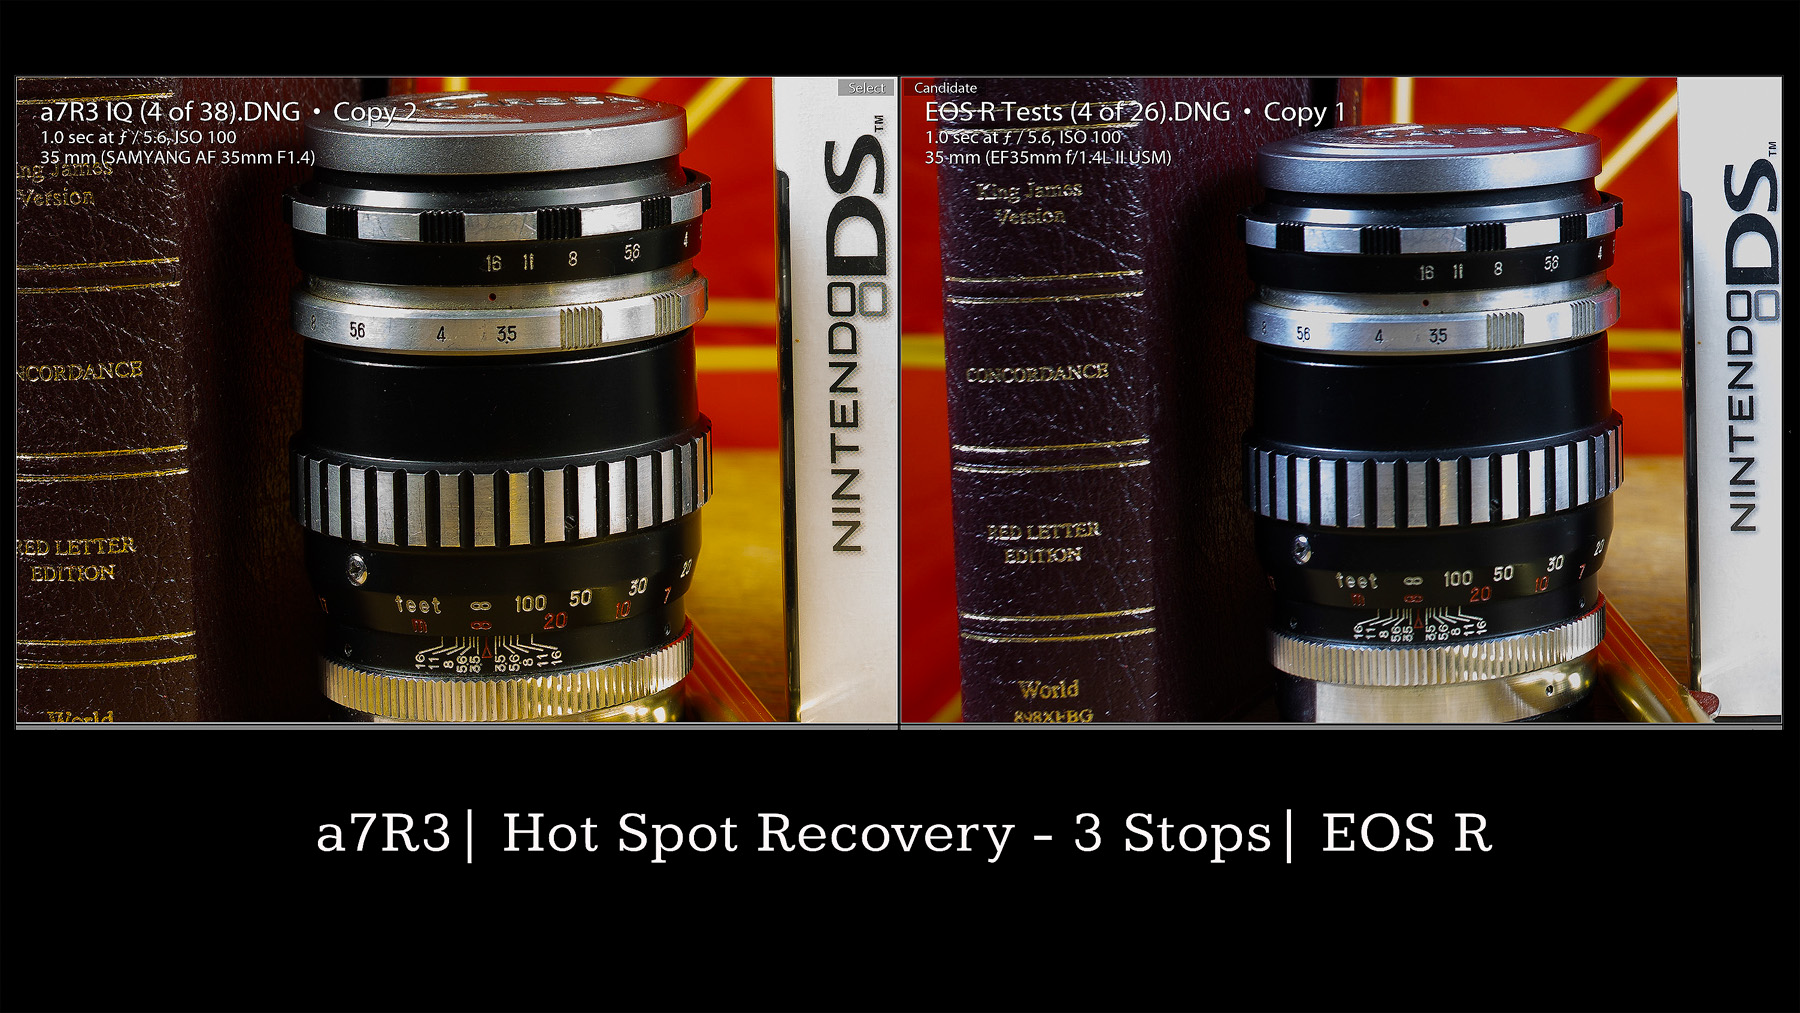 39 Hot Spot Recovery